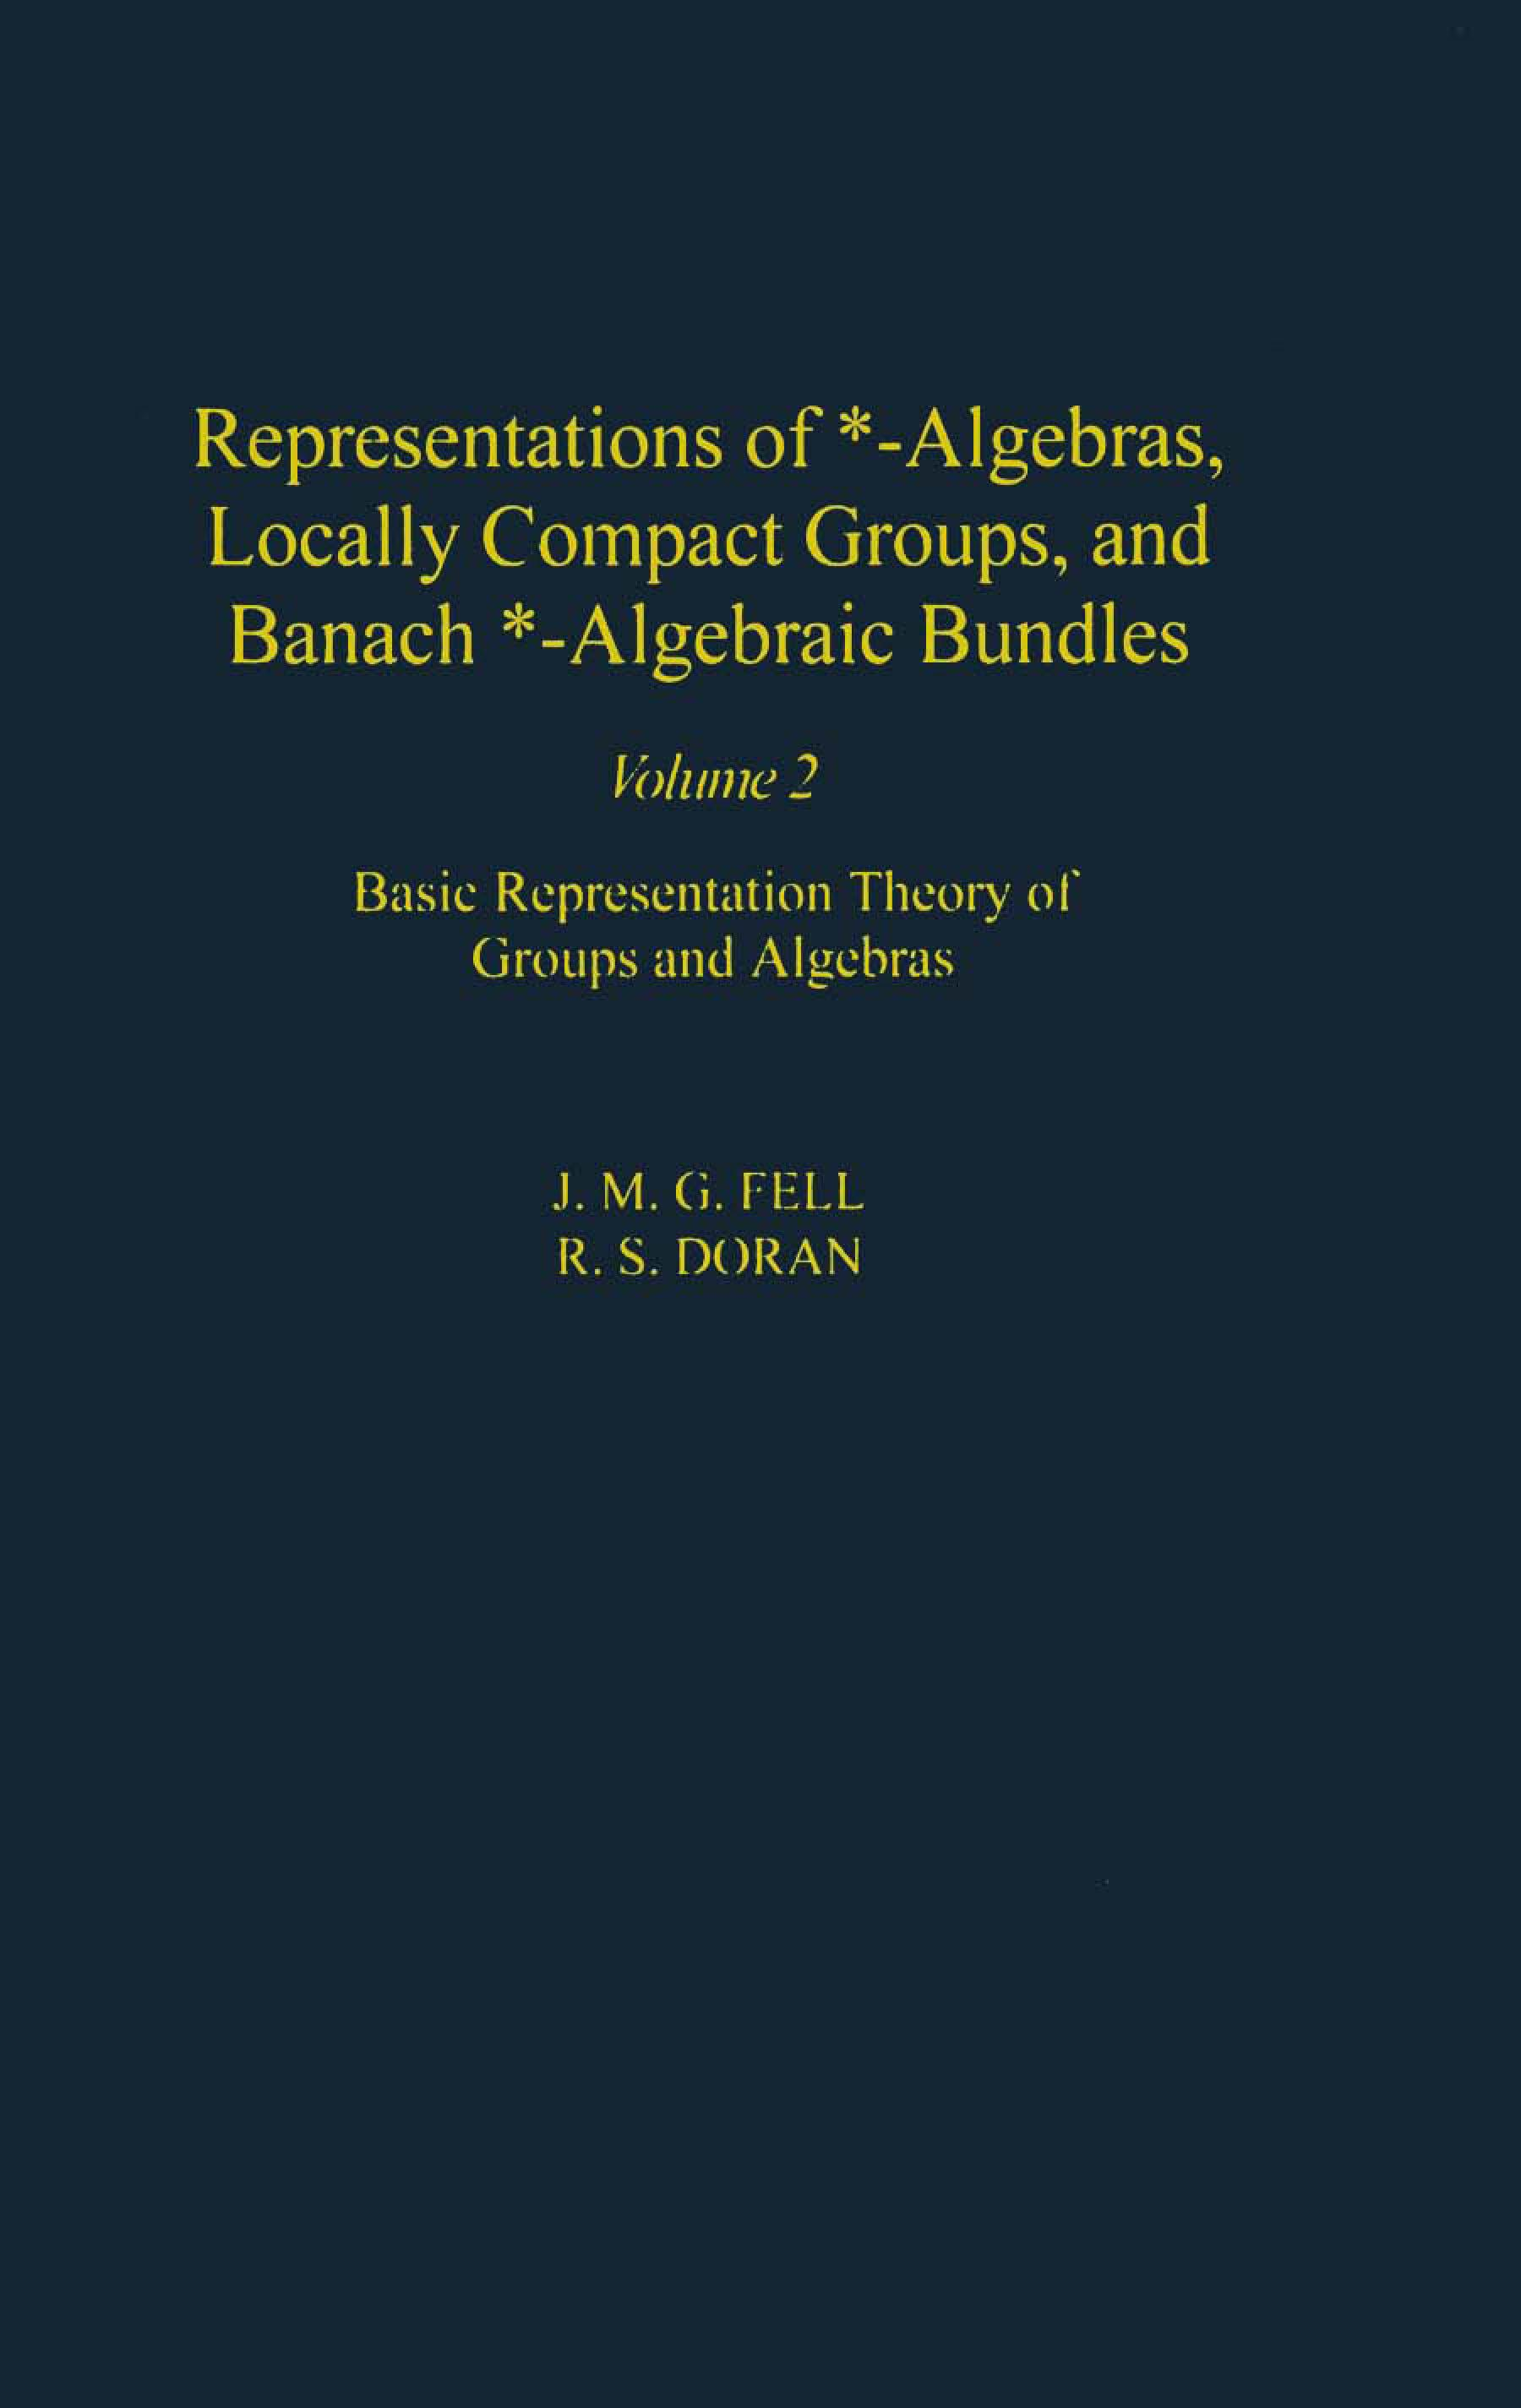 Representations of *-Algebras, Locally Compact Groups, and Banach *-Algebraic Bundles: Banach *-Algebraic Bundles, Induced Representations, and the Ge